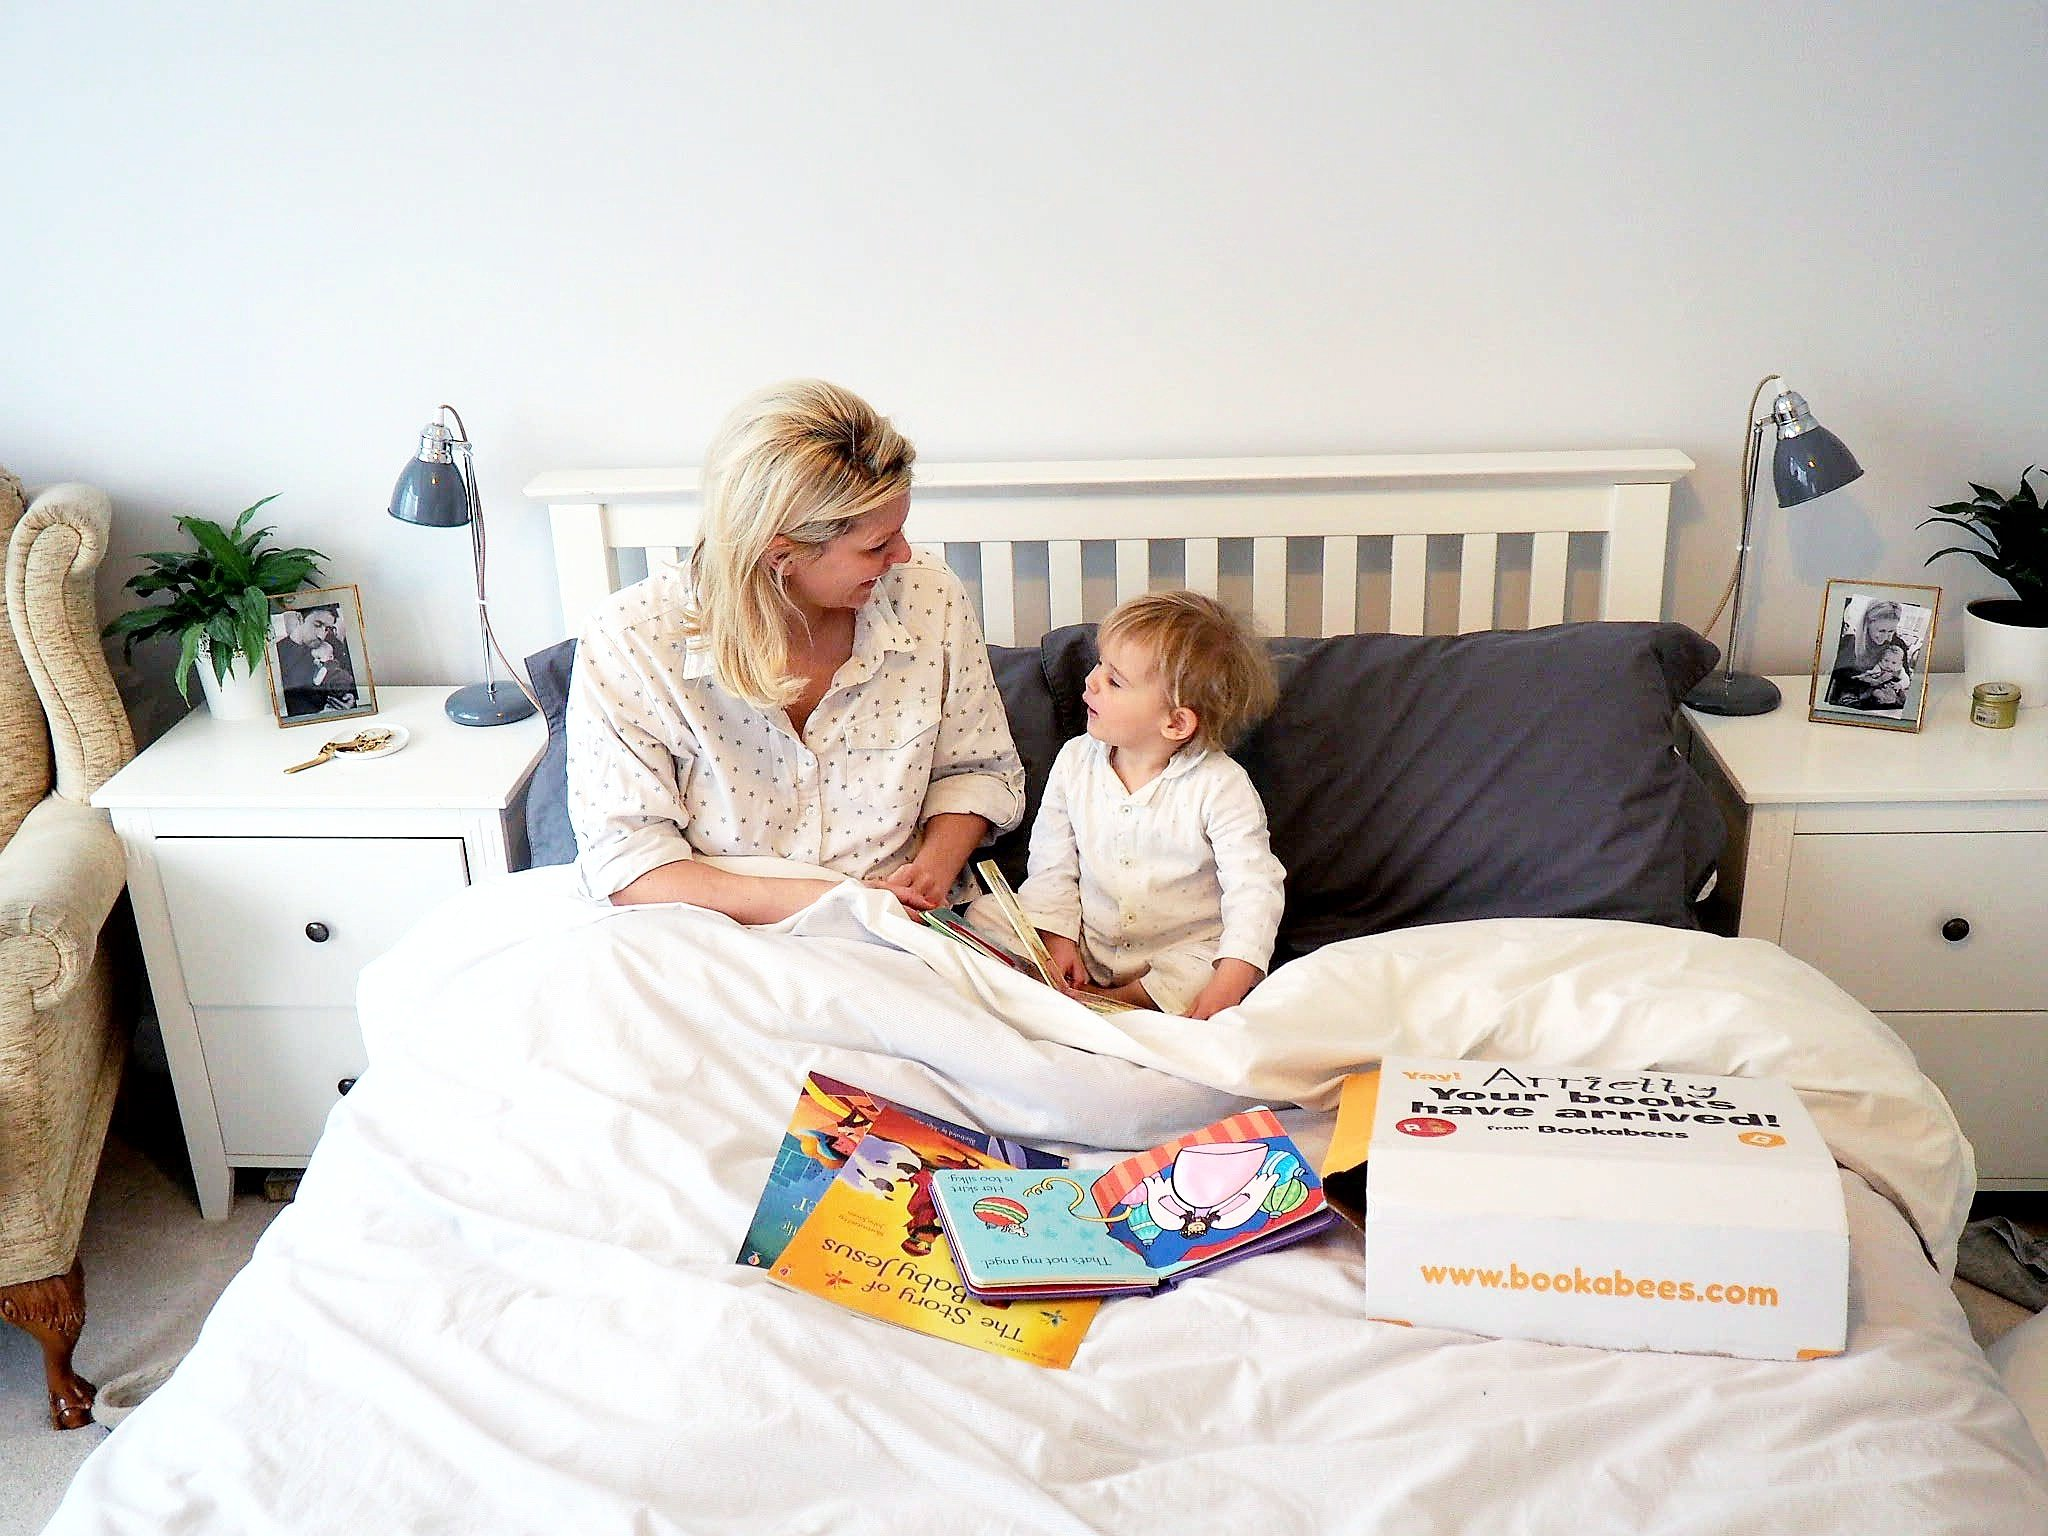 Mother and daughter reading Bookabees books in bed